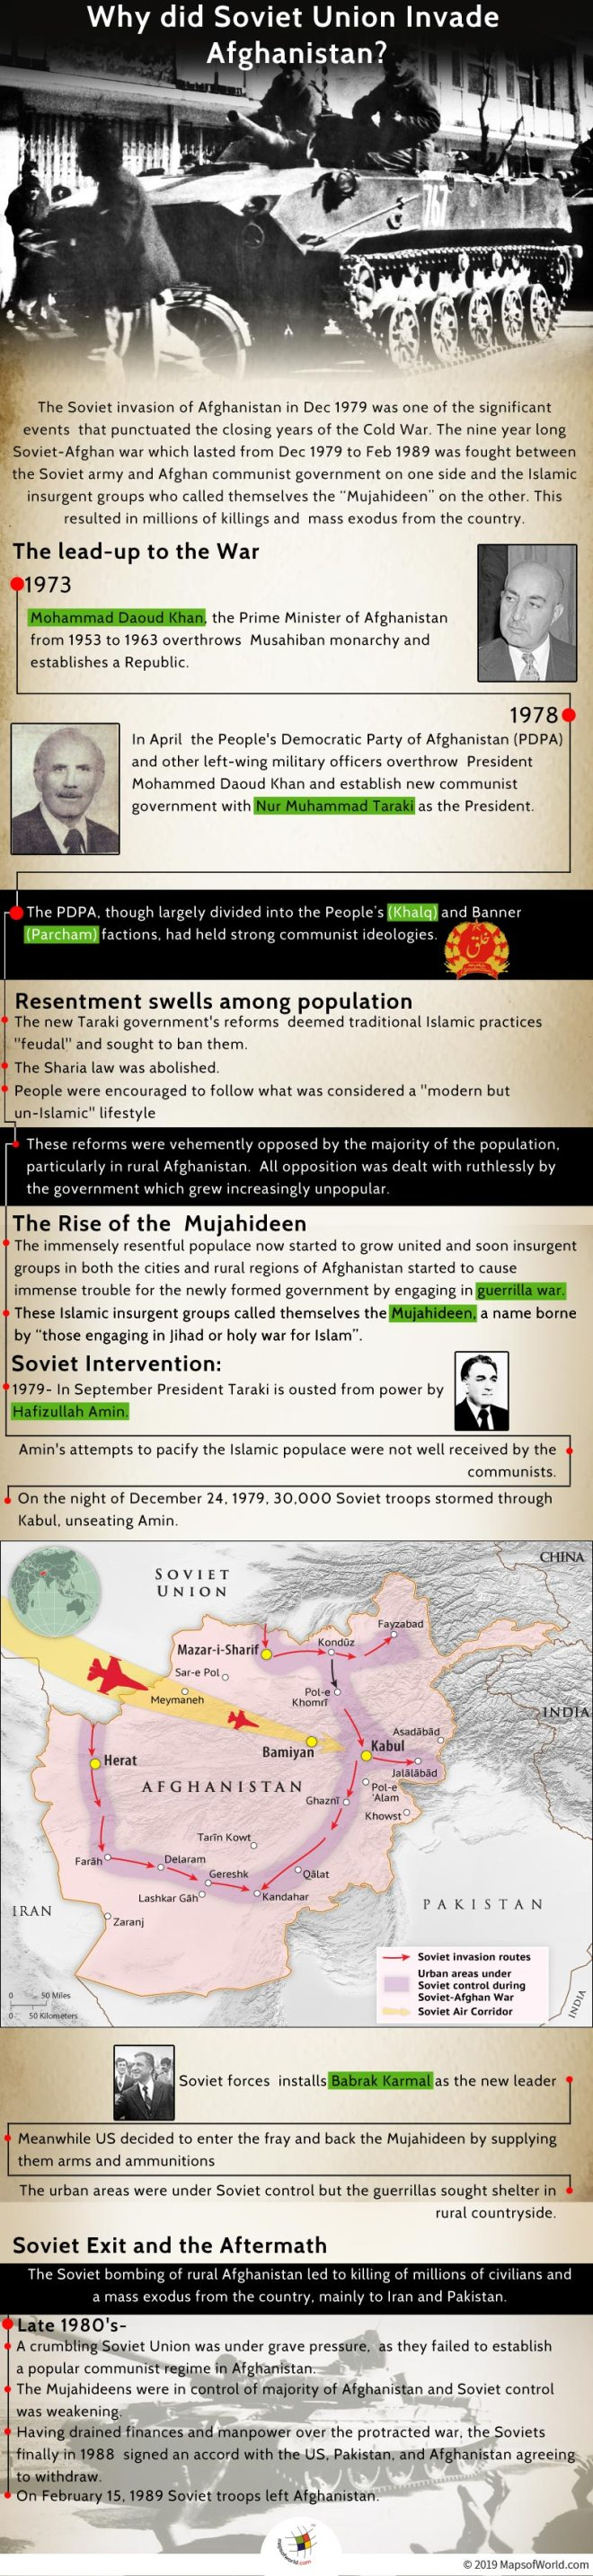 Infographic Giving Details on Soviet Invasion of Afghanistan